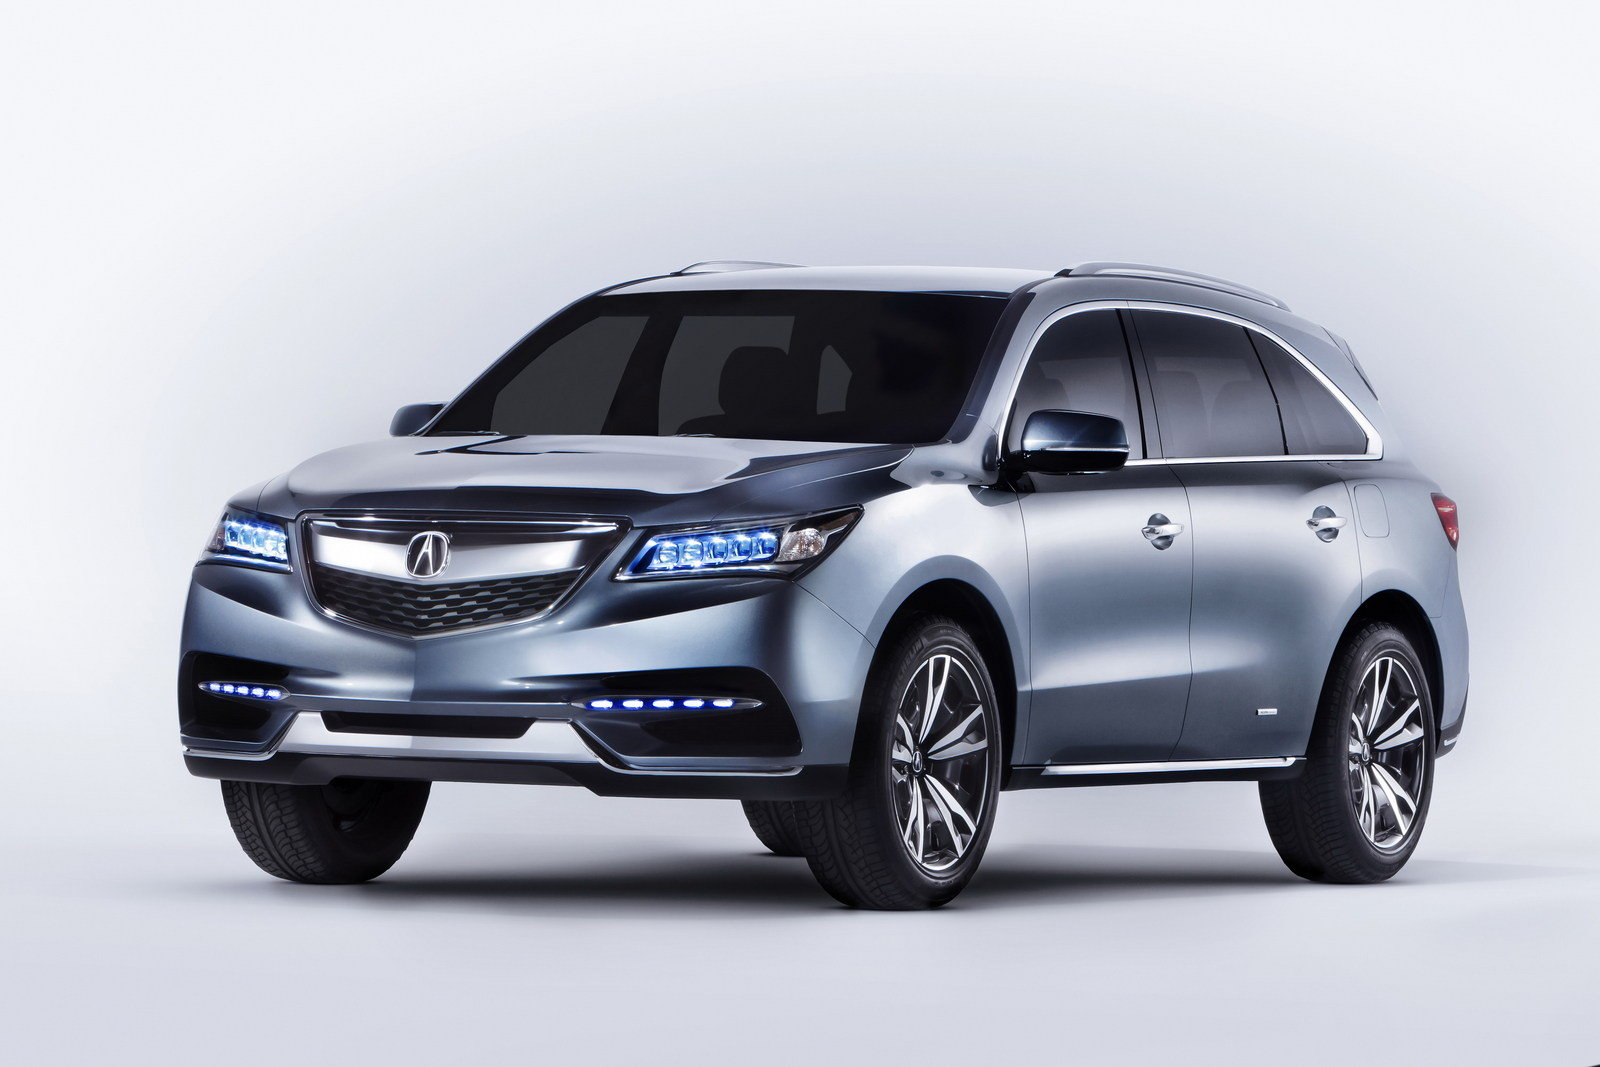 2014 2016 acura mdx picture 489355 car review top speed. Black Bedroom Furniture Sets. Home Design Ideas